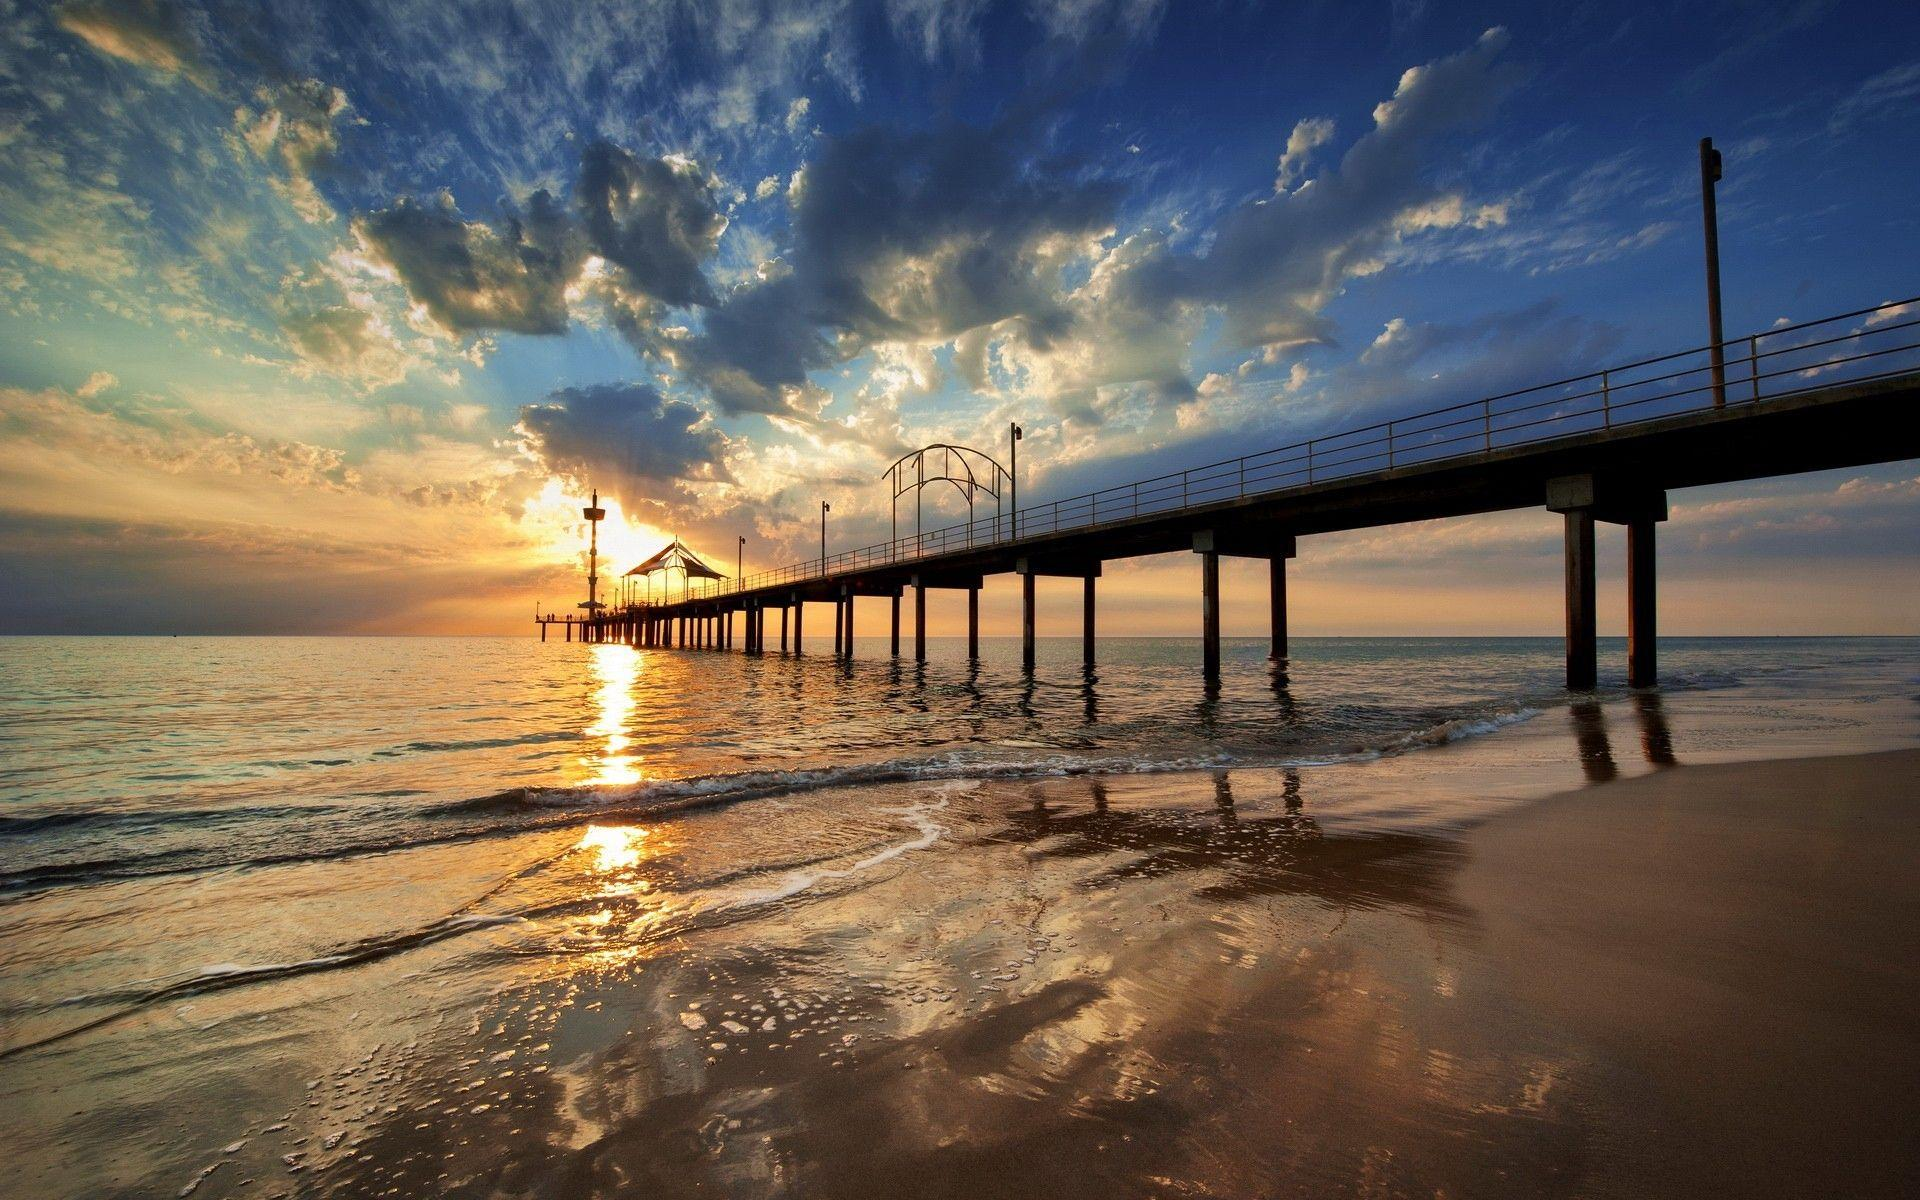 Beaches: Jetty Brighton Sea Nature Image For Desktop Backgrounds for